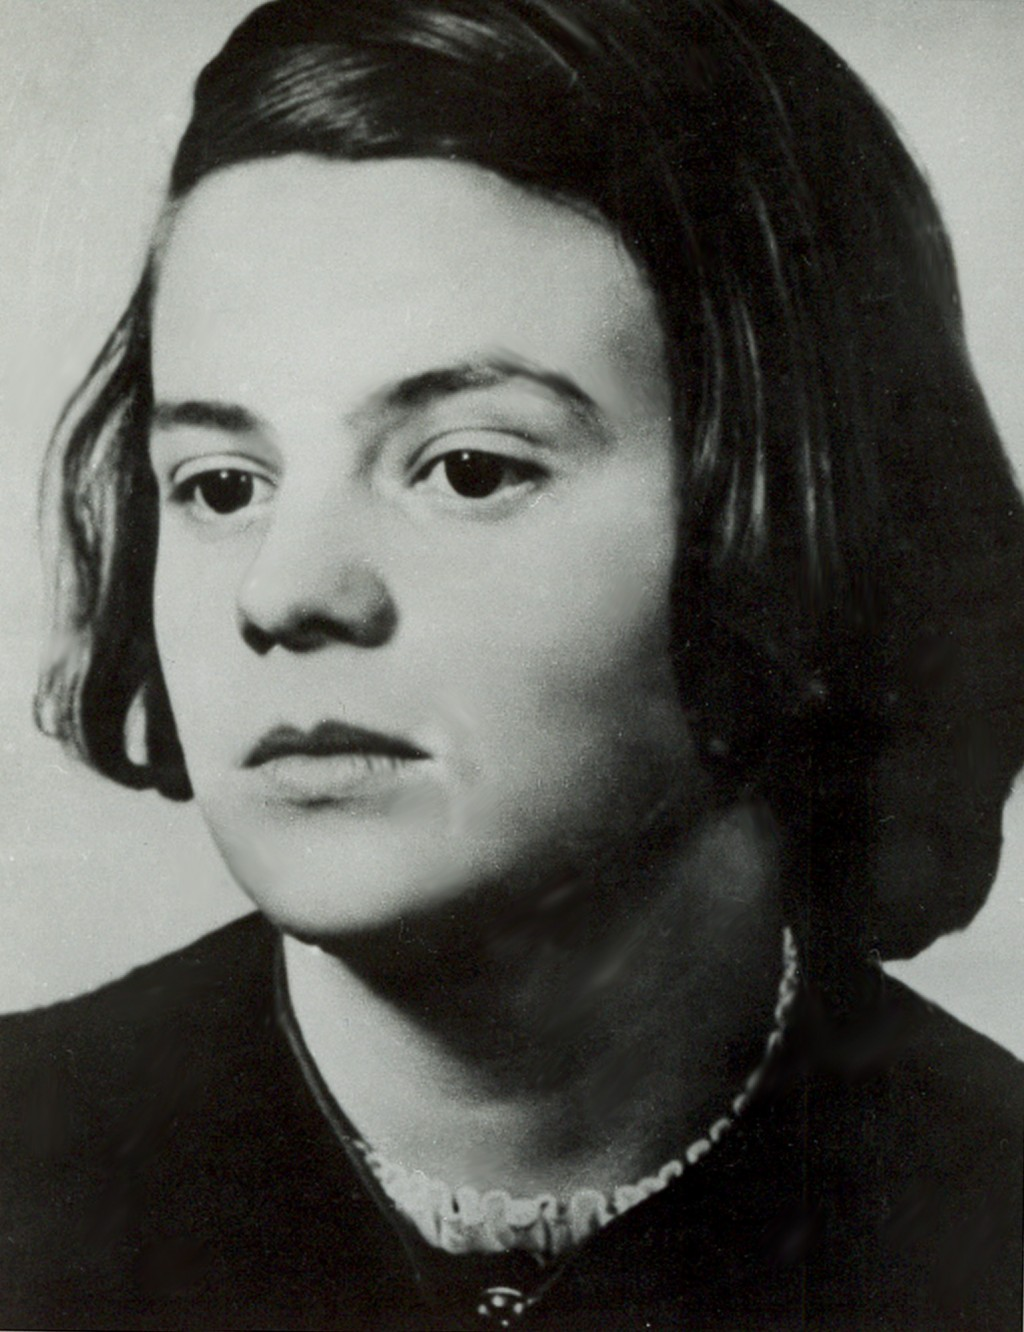 FILE - This undated file photo shows German Sophie Scholl, member of the Nazi resistance activist group 'White Rose'. May 9, 2021 marks the 100th anni...